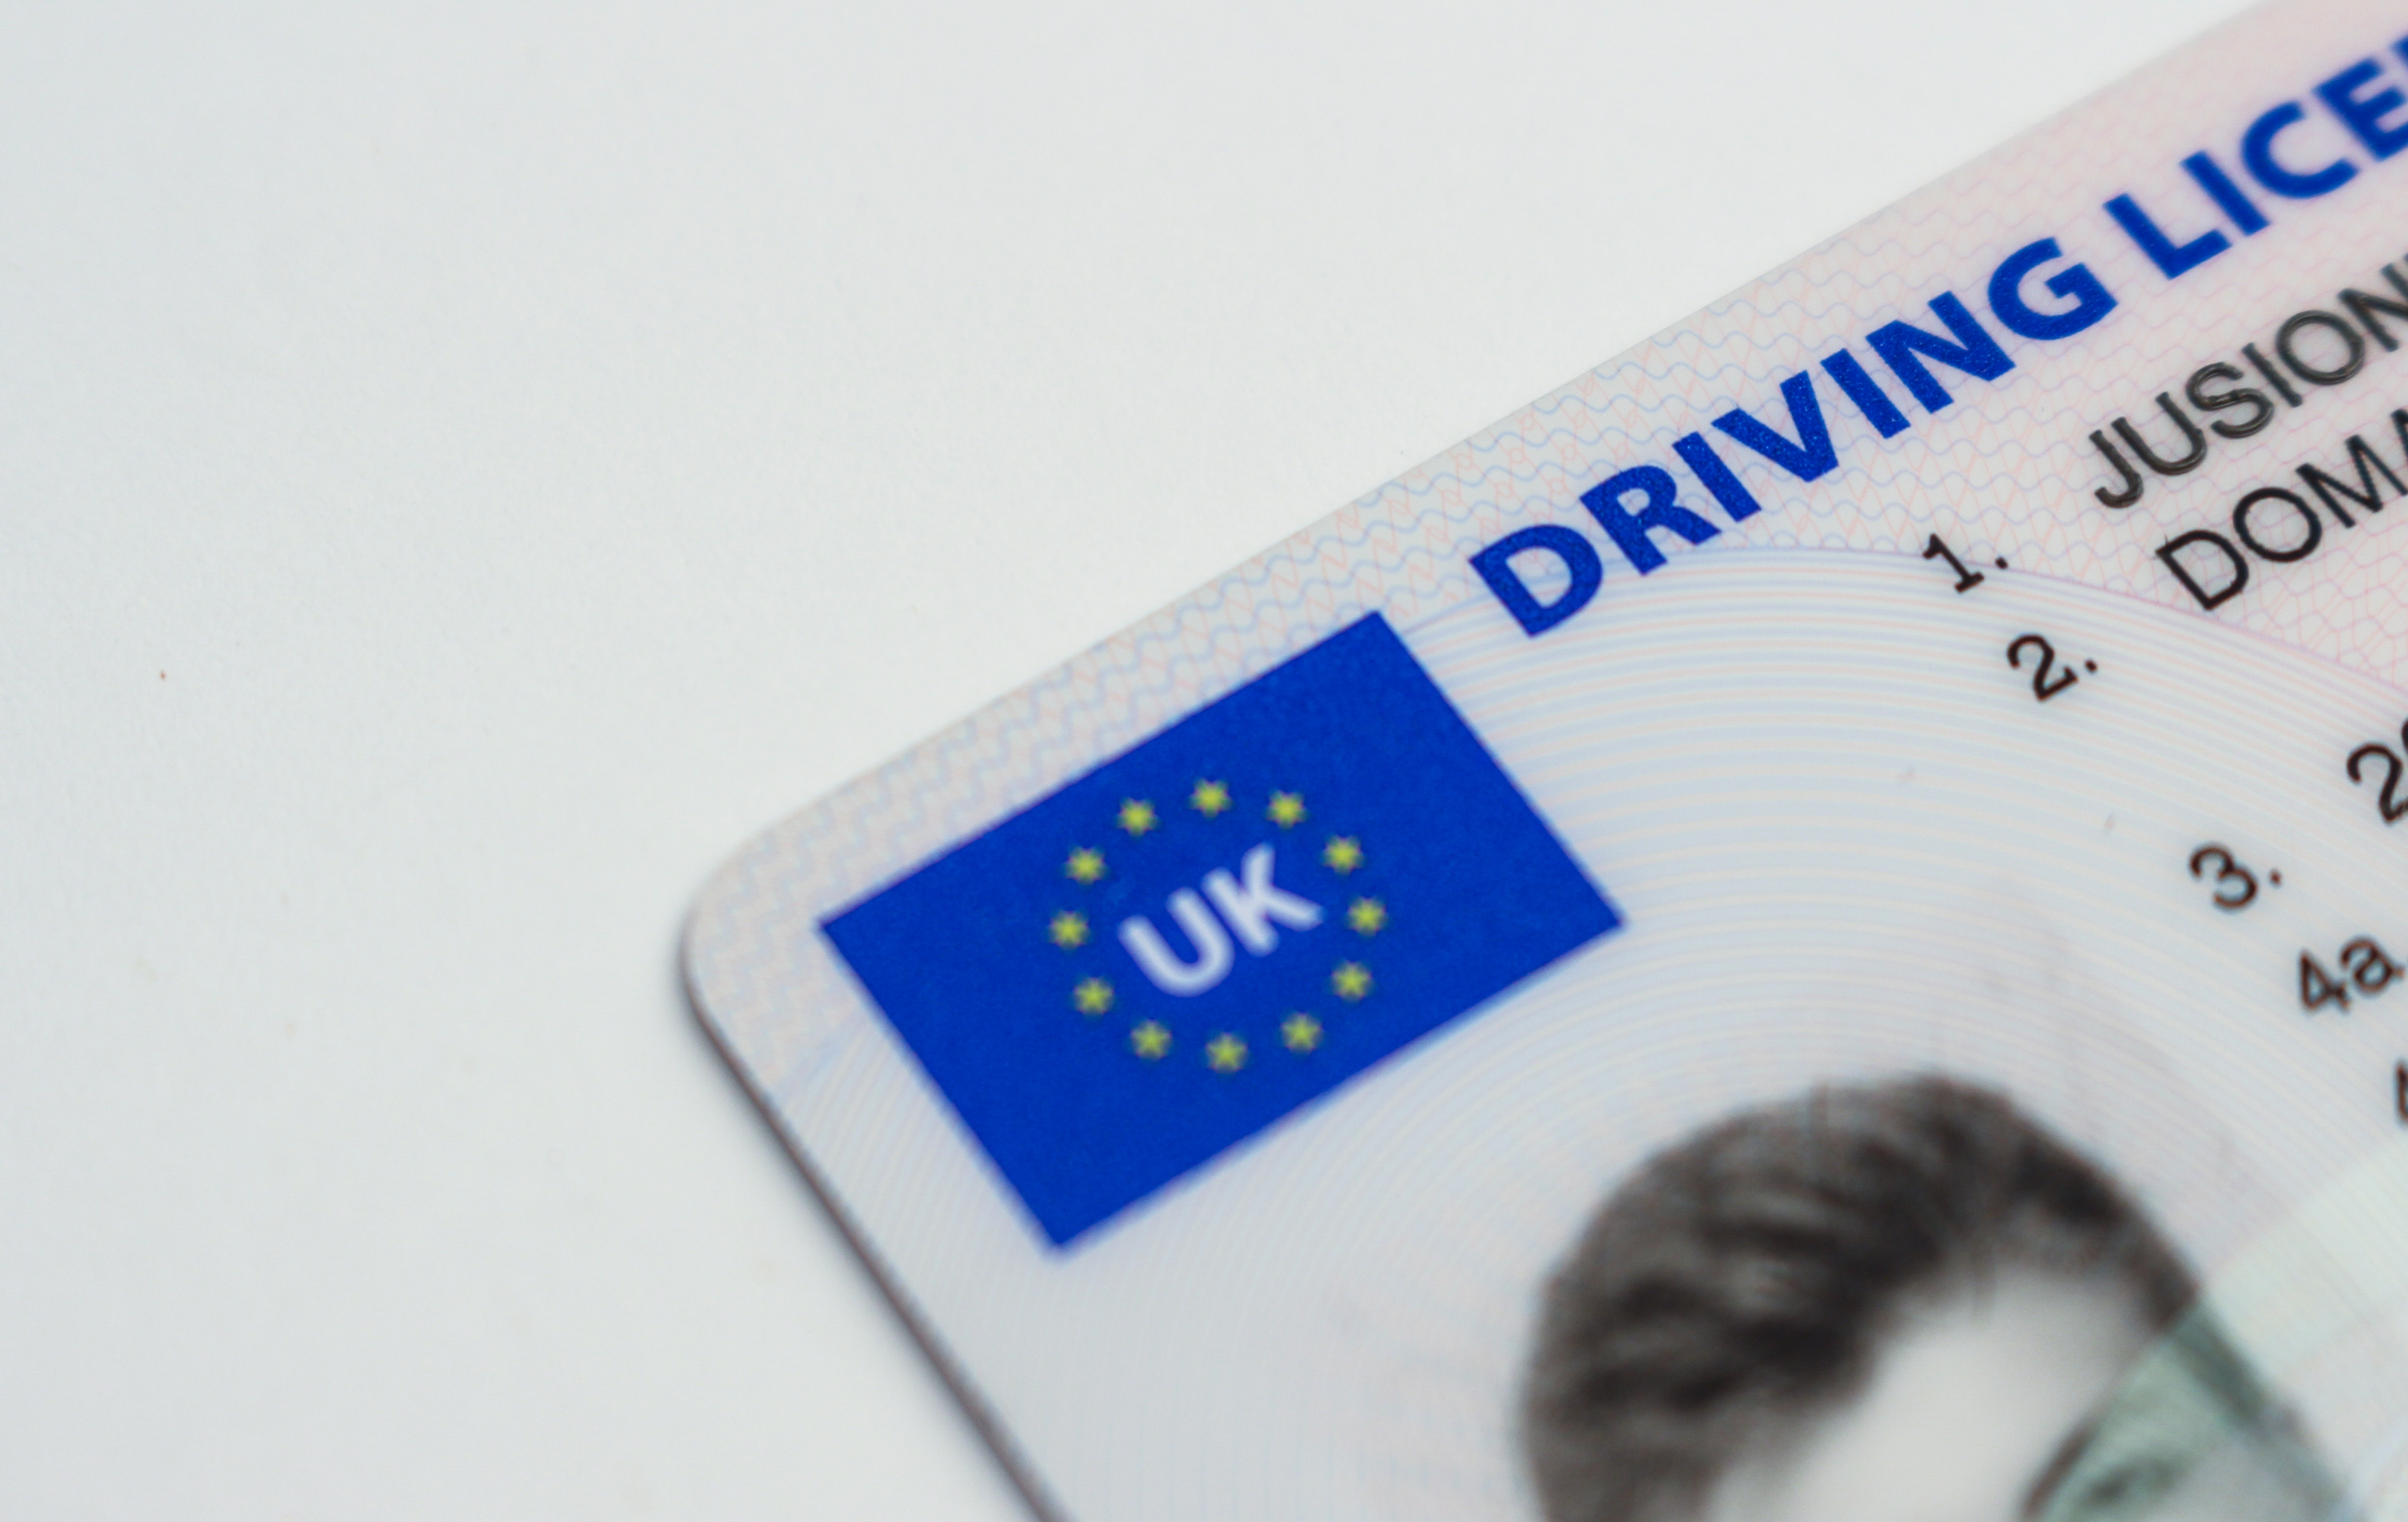 Receive your driving license if you learn to drive in a week.